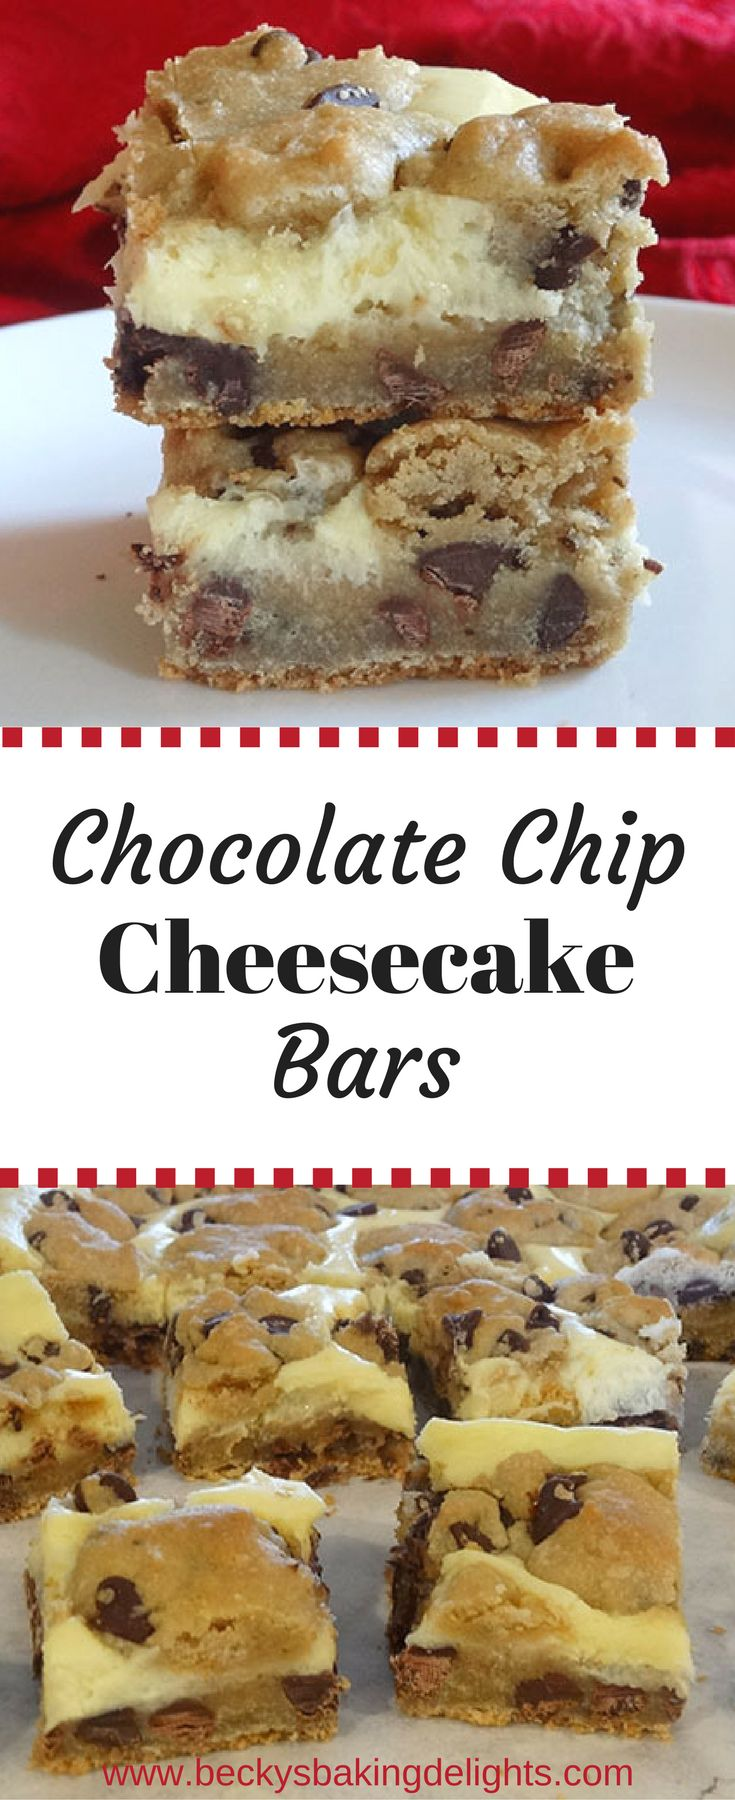 These chocolate chip cheesecake bars combine a traditional chocolate chip cookie recipe with a cream cheese filling.